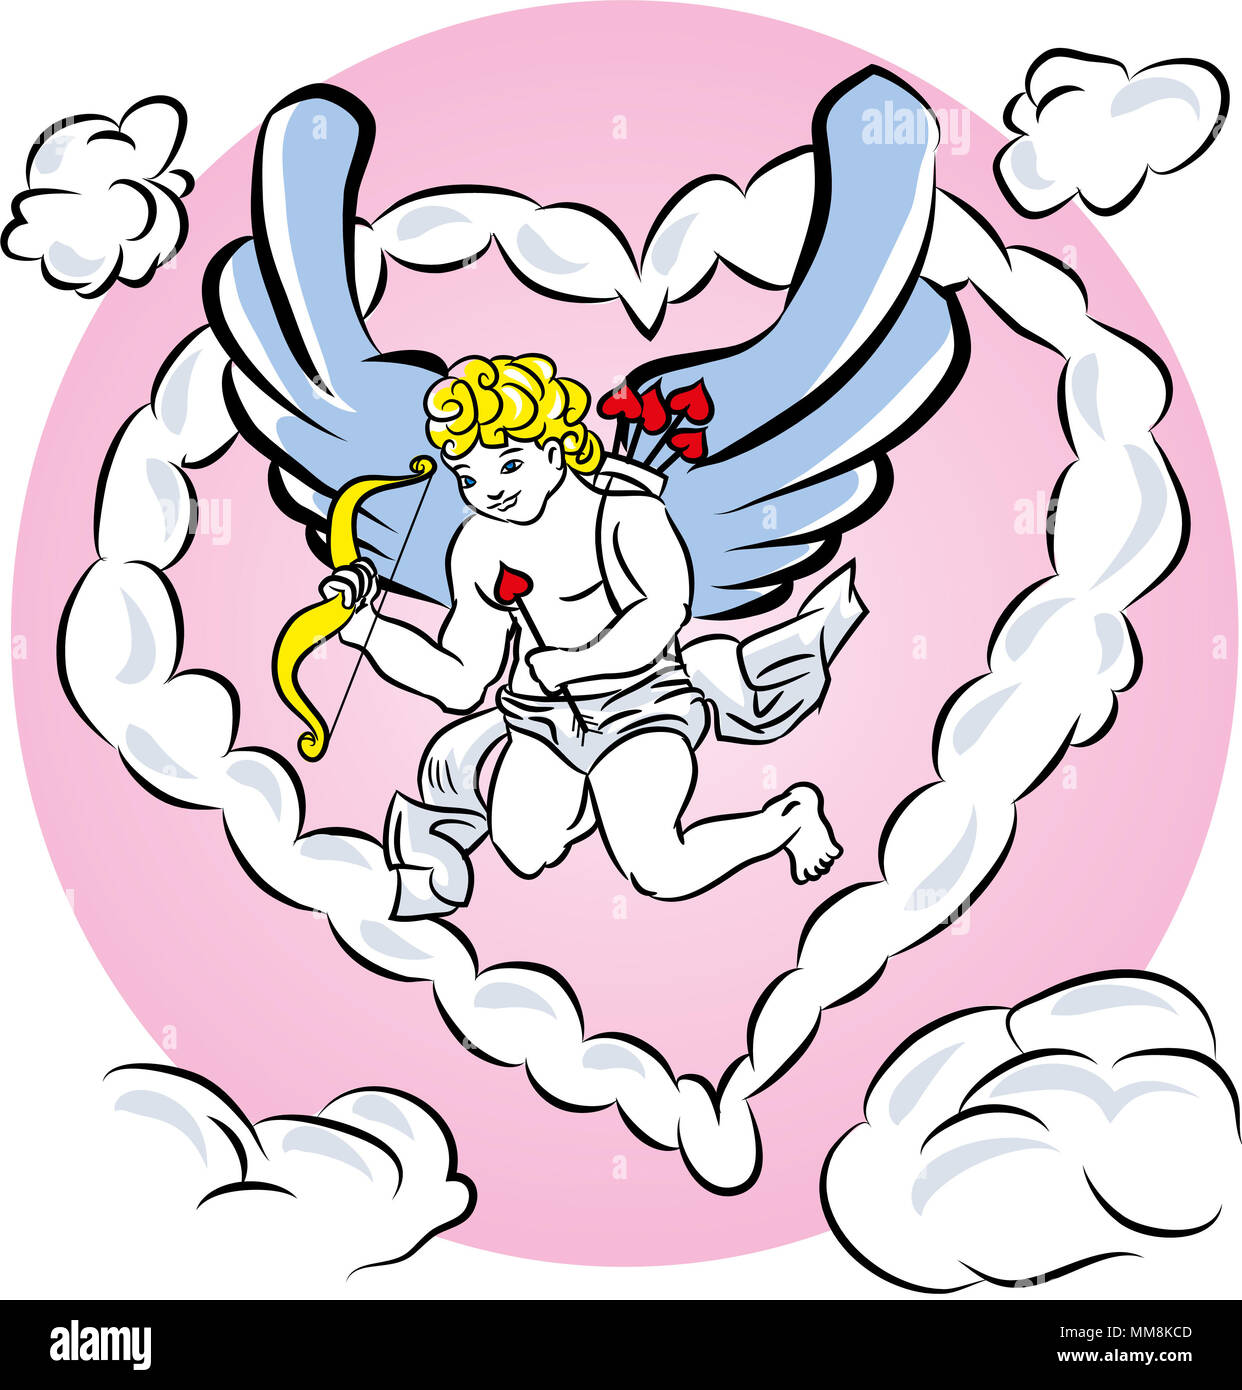 Cupid in the clouds shaped heart. illustration of a valentine's day cupid ready. - Stock Image